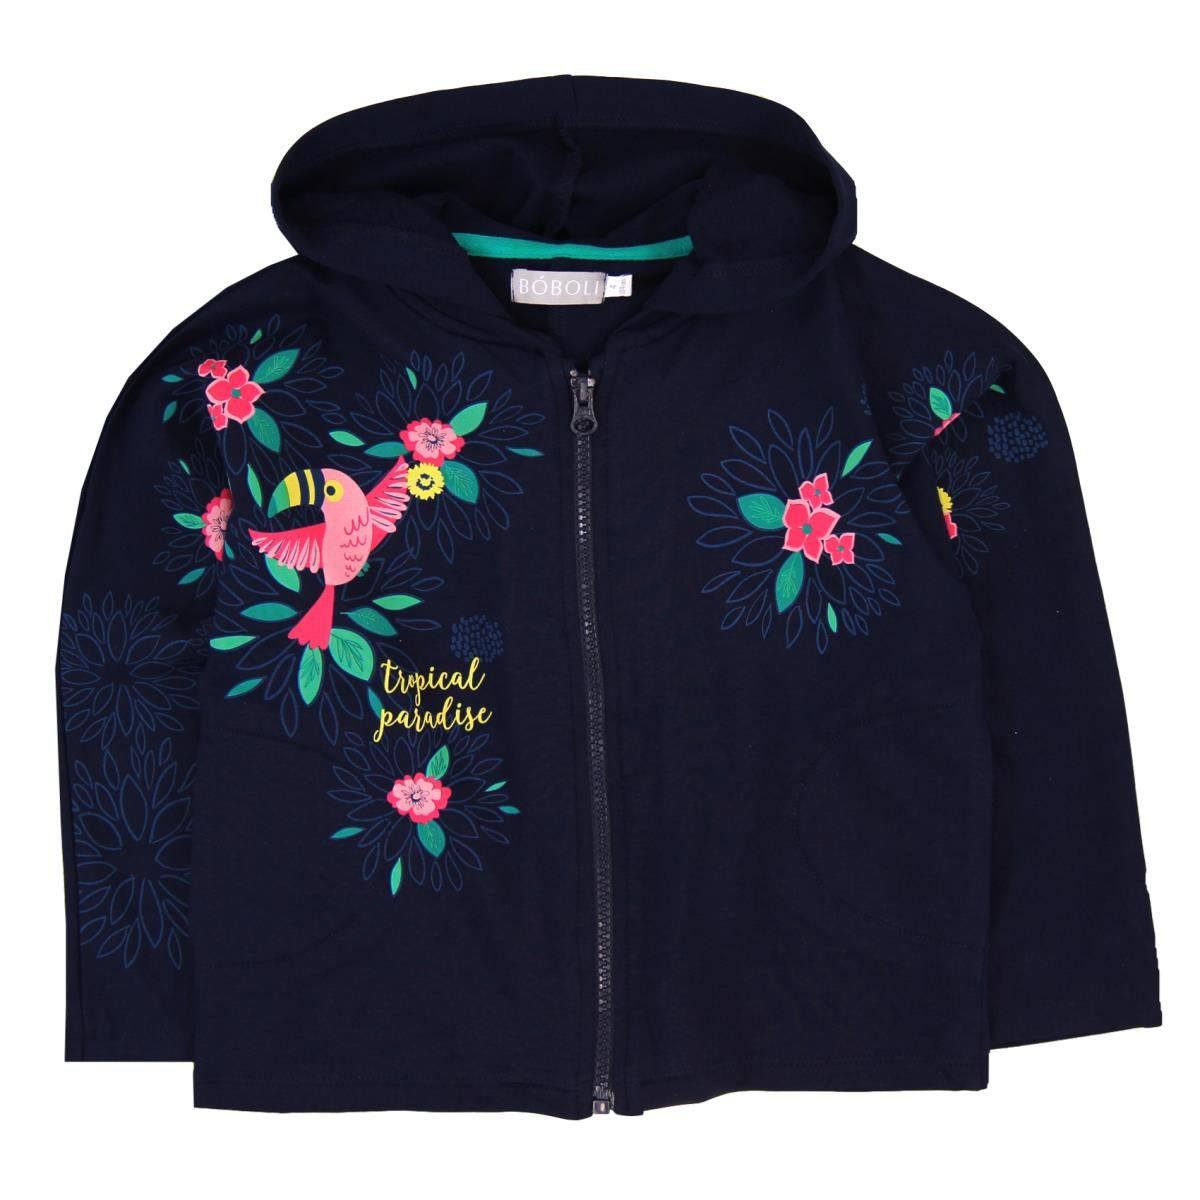 boboli Fleece Jacket For Girl, Felpa Bambina Blu (Navy) Bóboli 413143